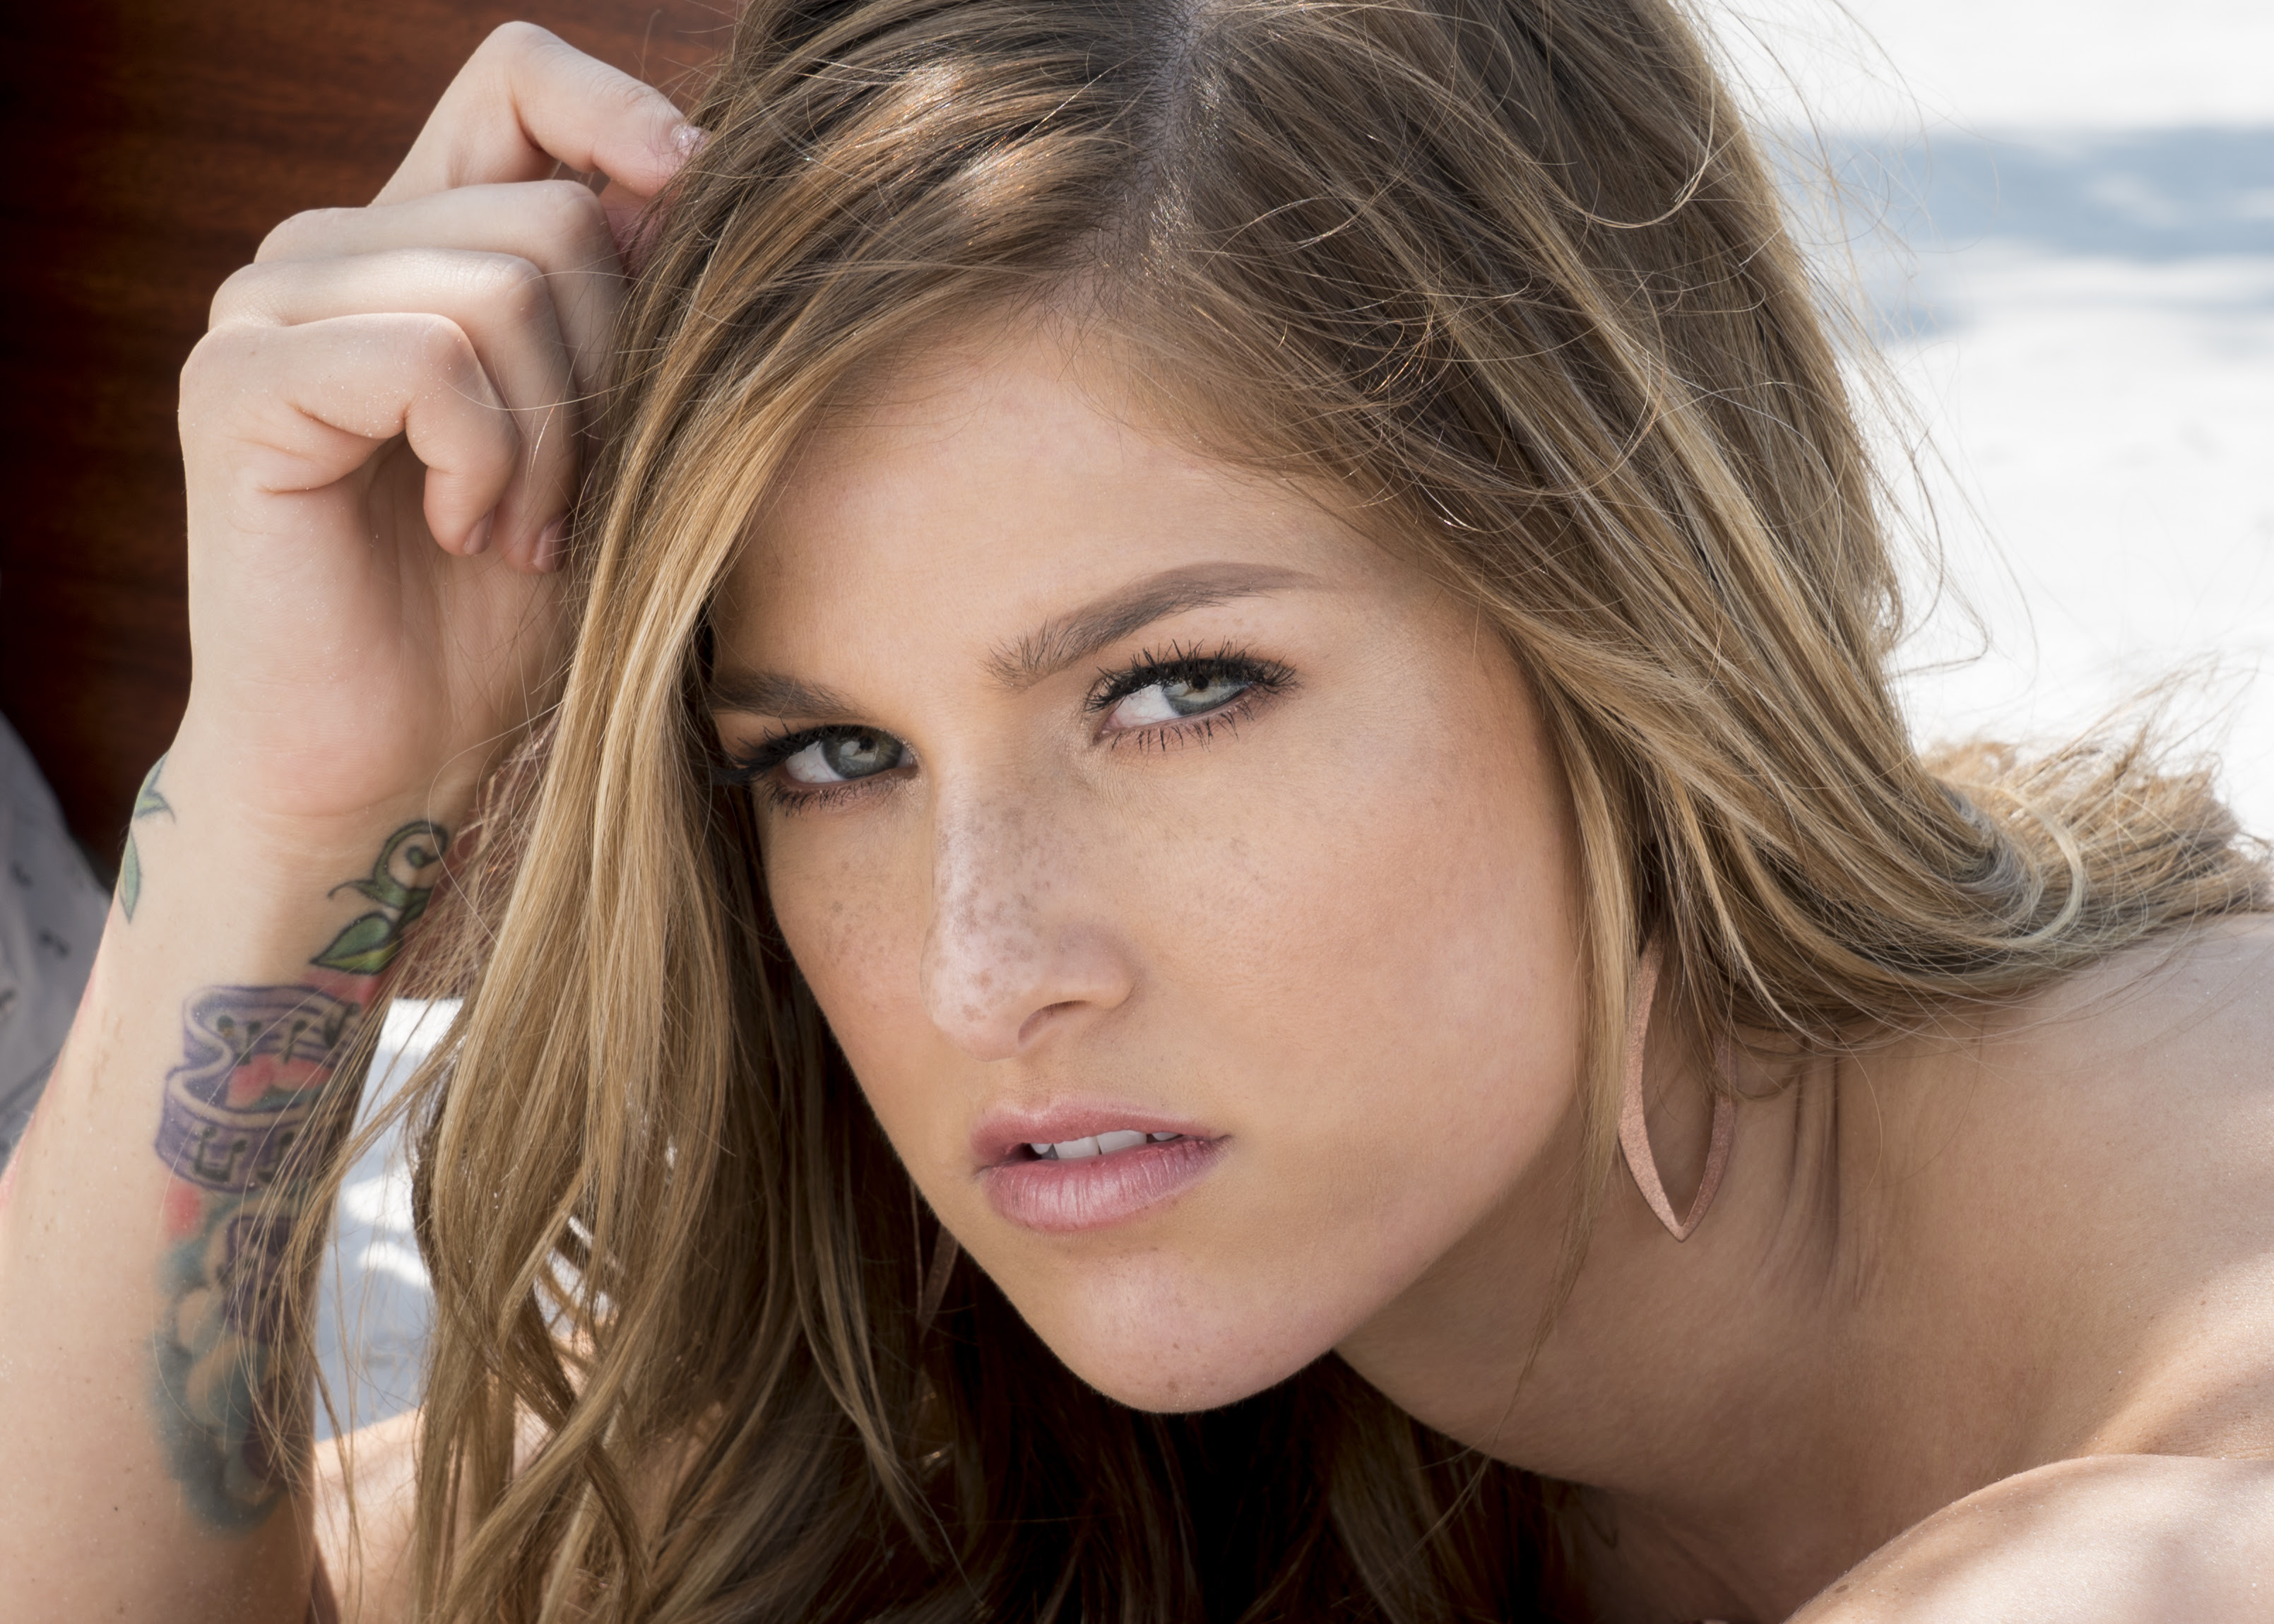 Cassadee Pope naked 425